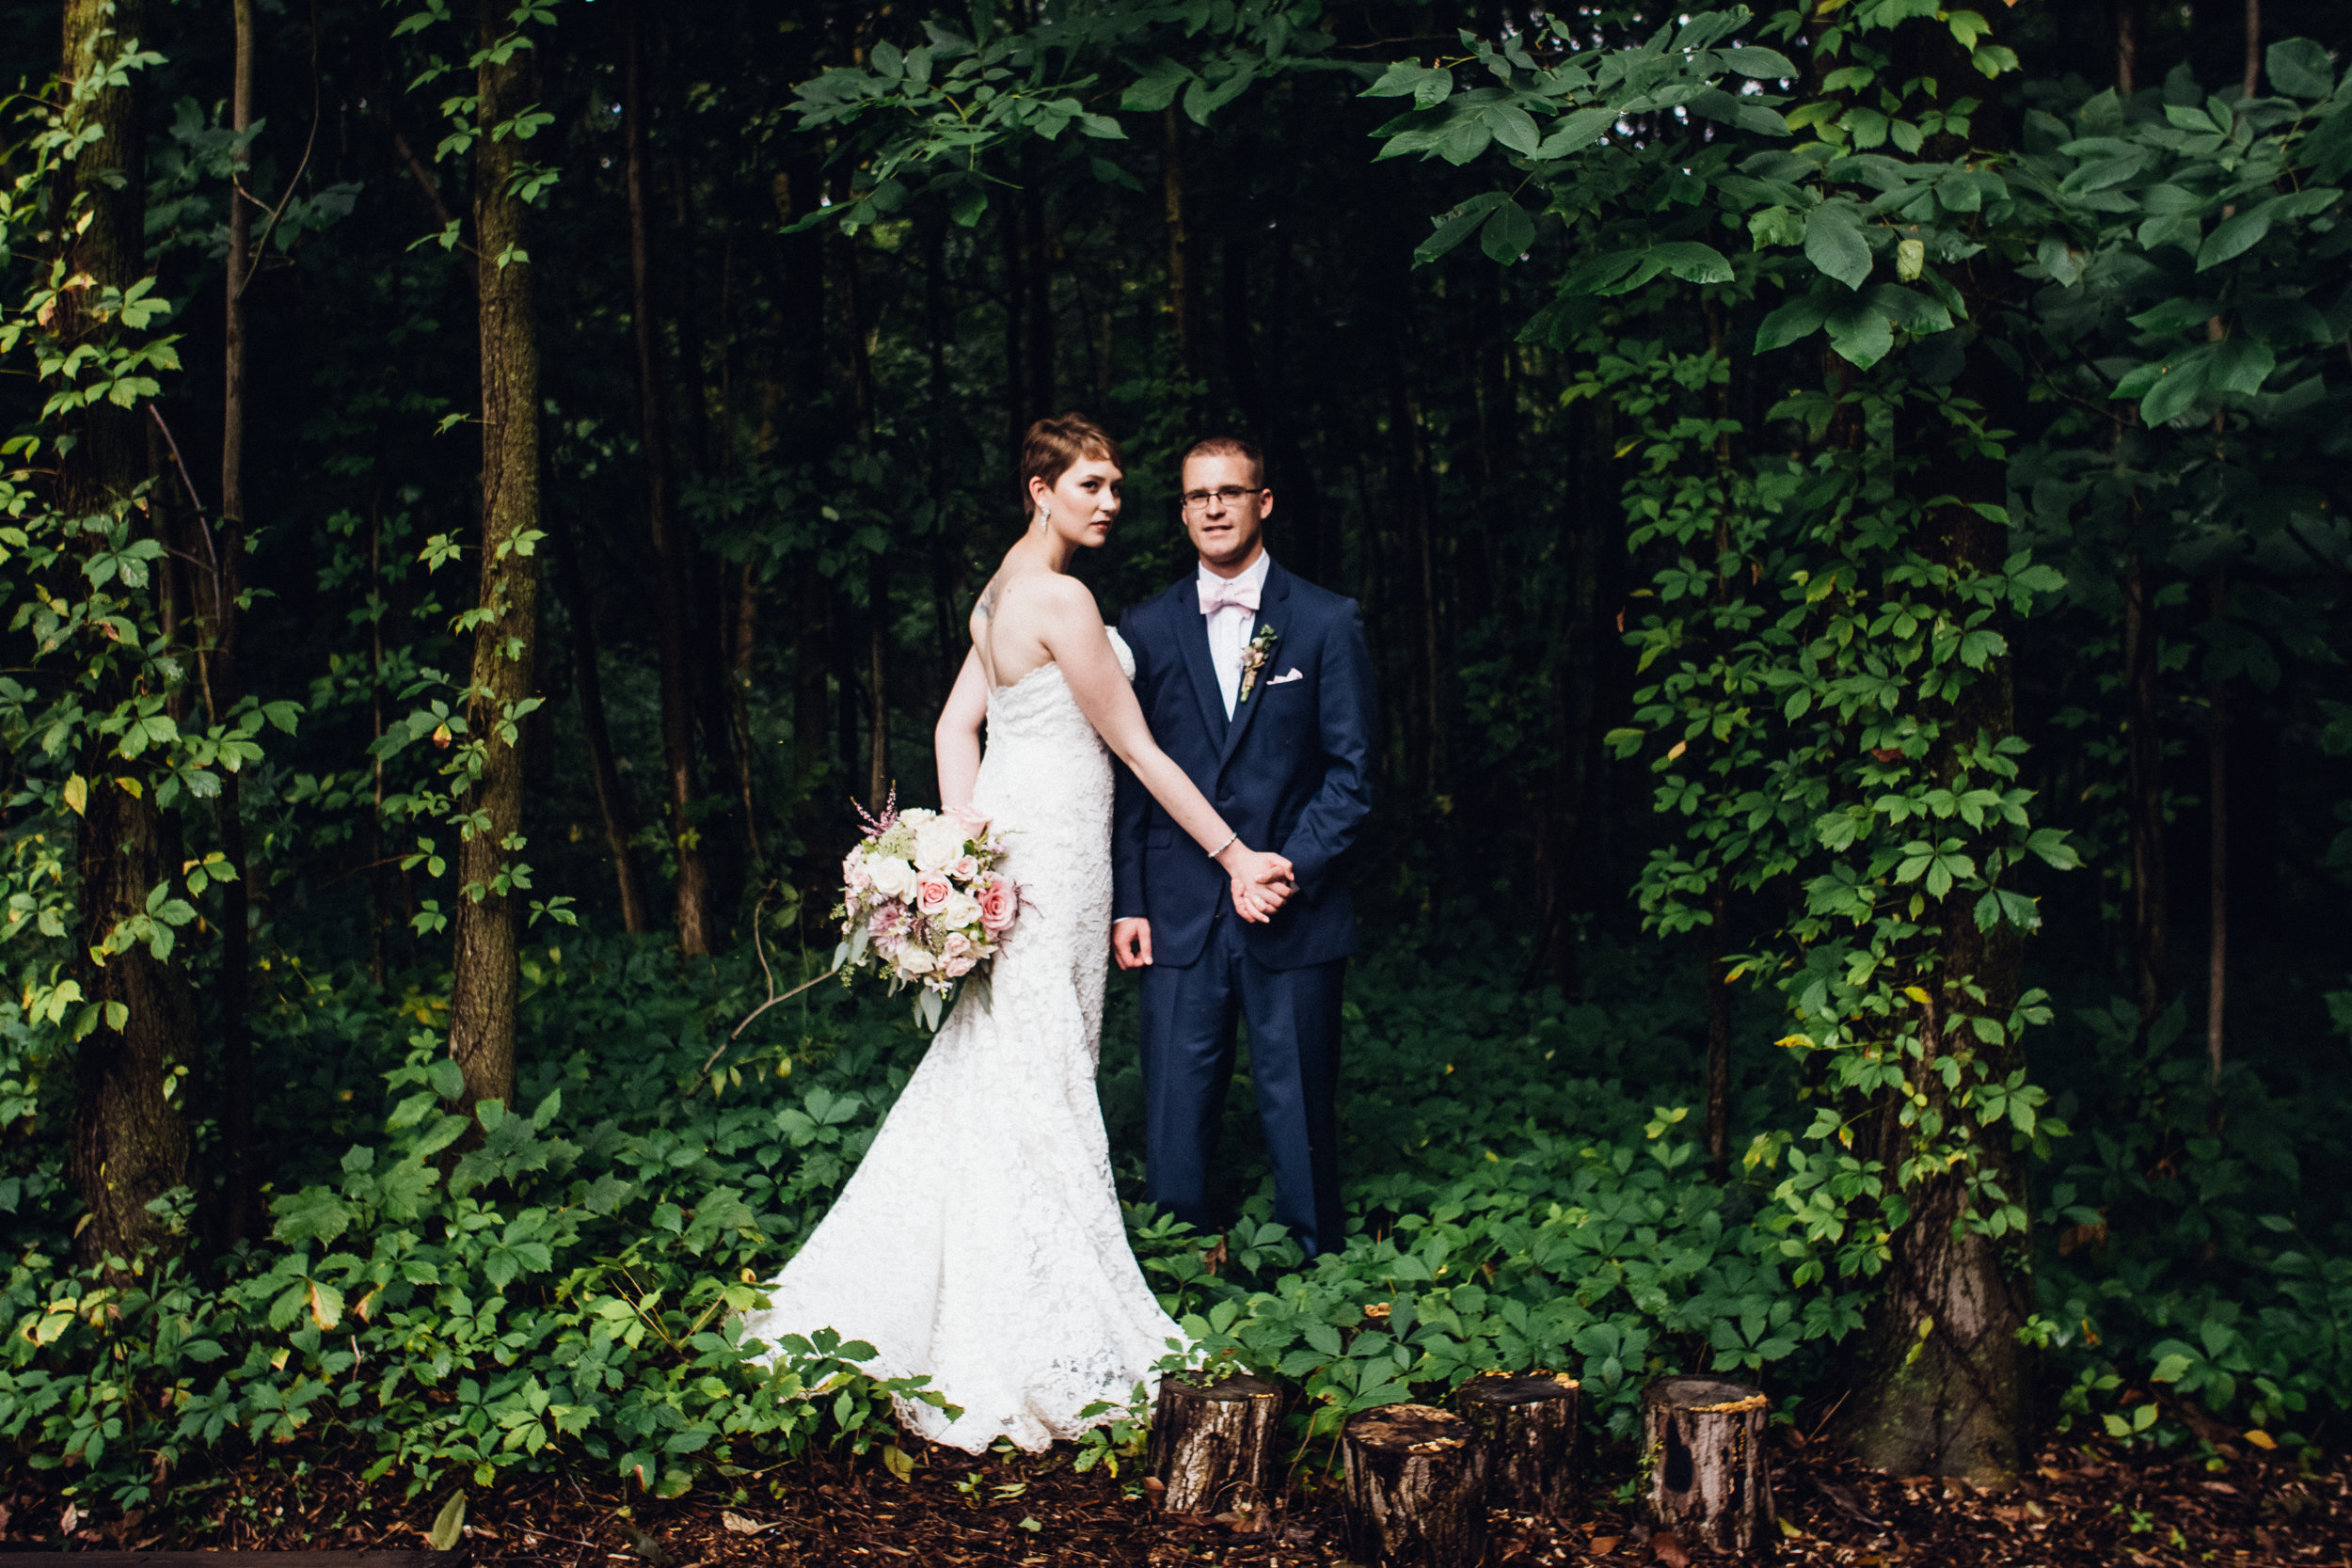 Wedding-Cinematography-Cinematographer-Cinematographers-West-Michigan-Grand-Rapids-Videography-Videographers-Shadow-Shine-Pictures